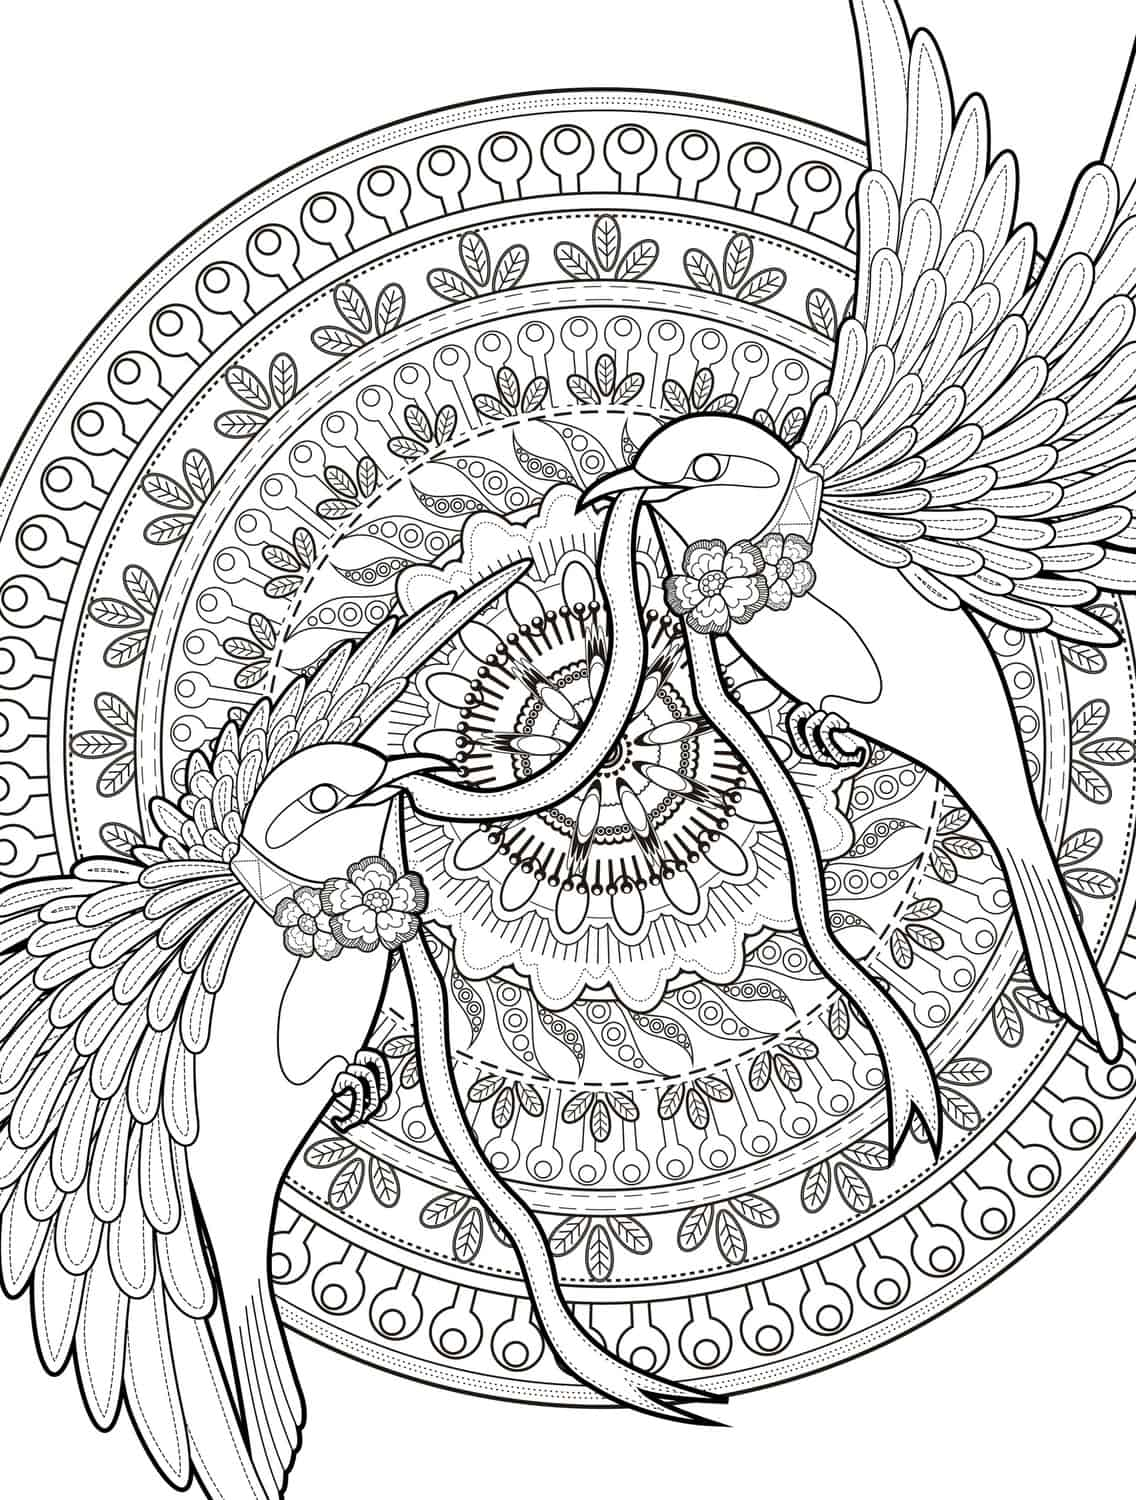 24 More Free Printable Adult Coloring Pages Page 24 of 25